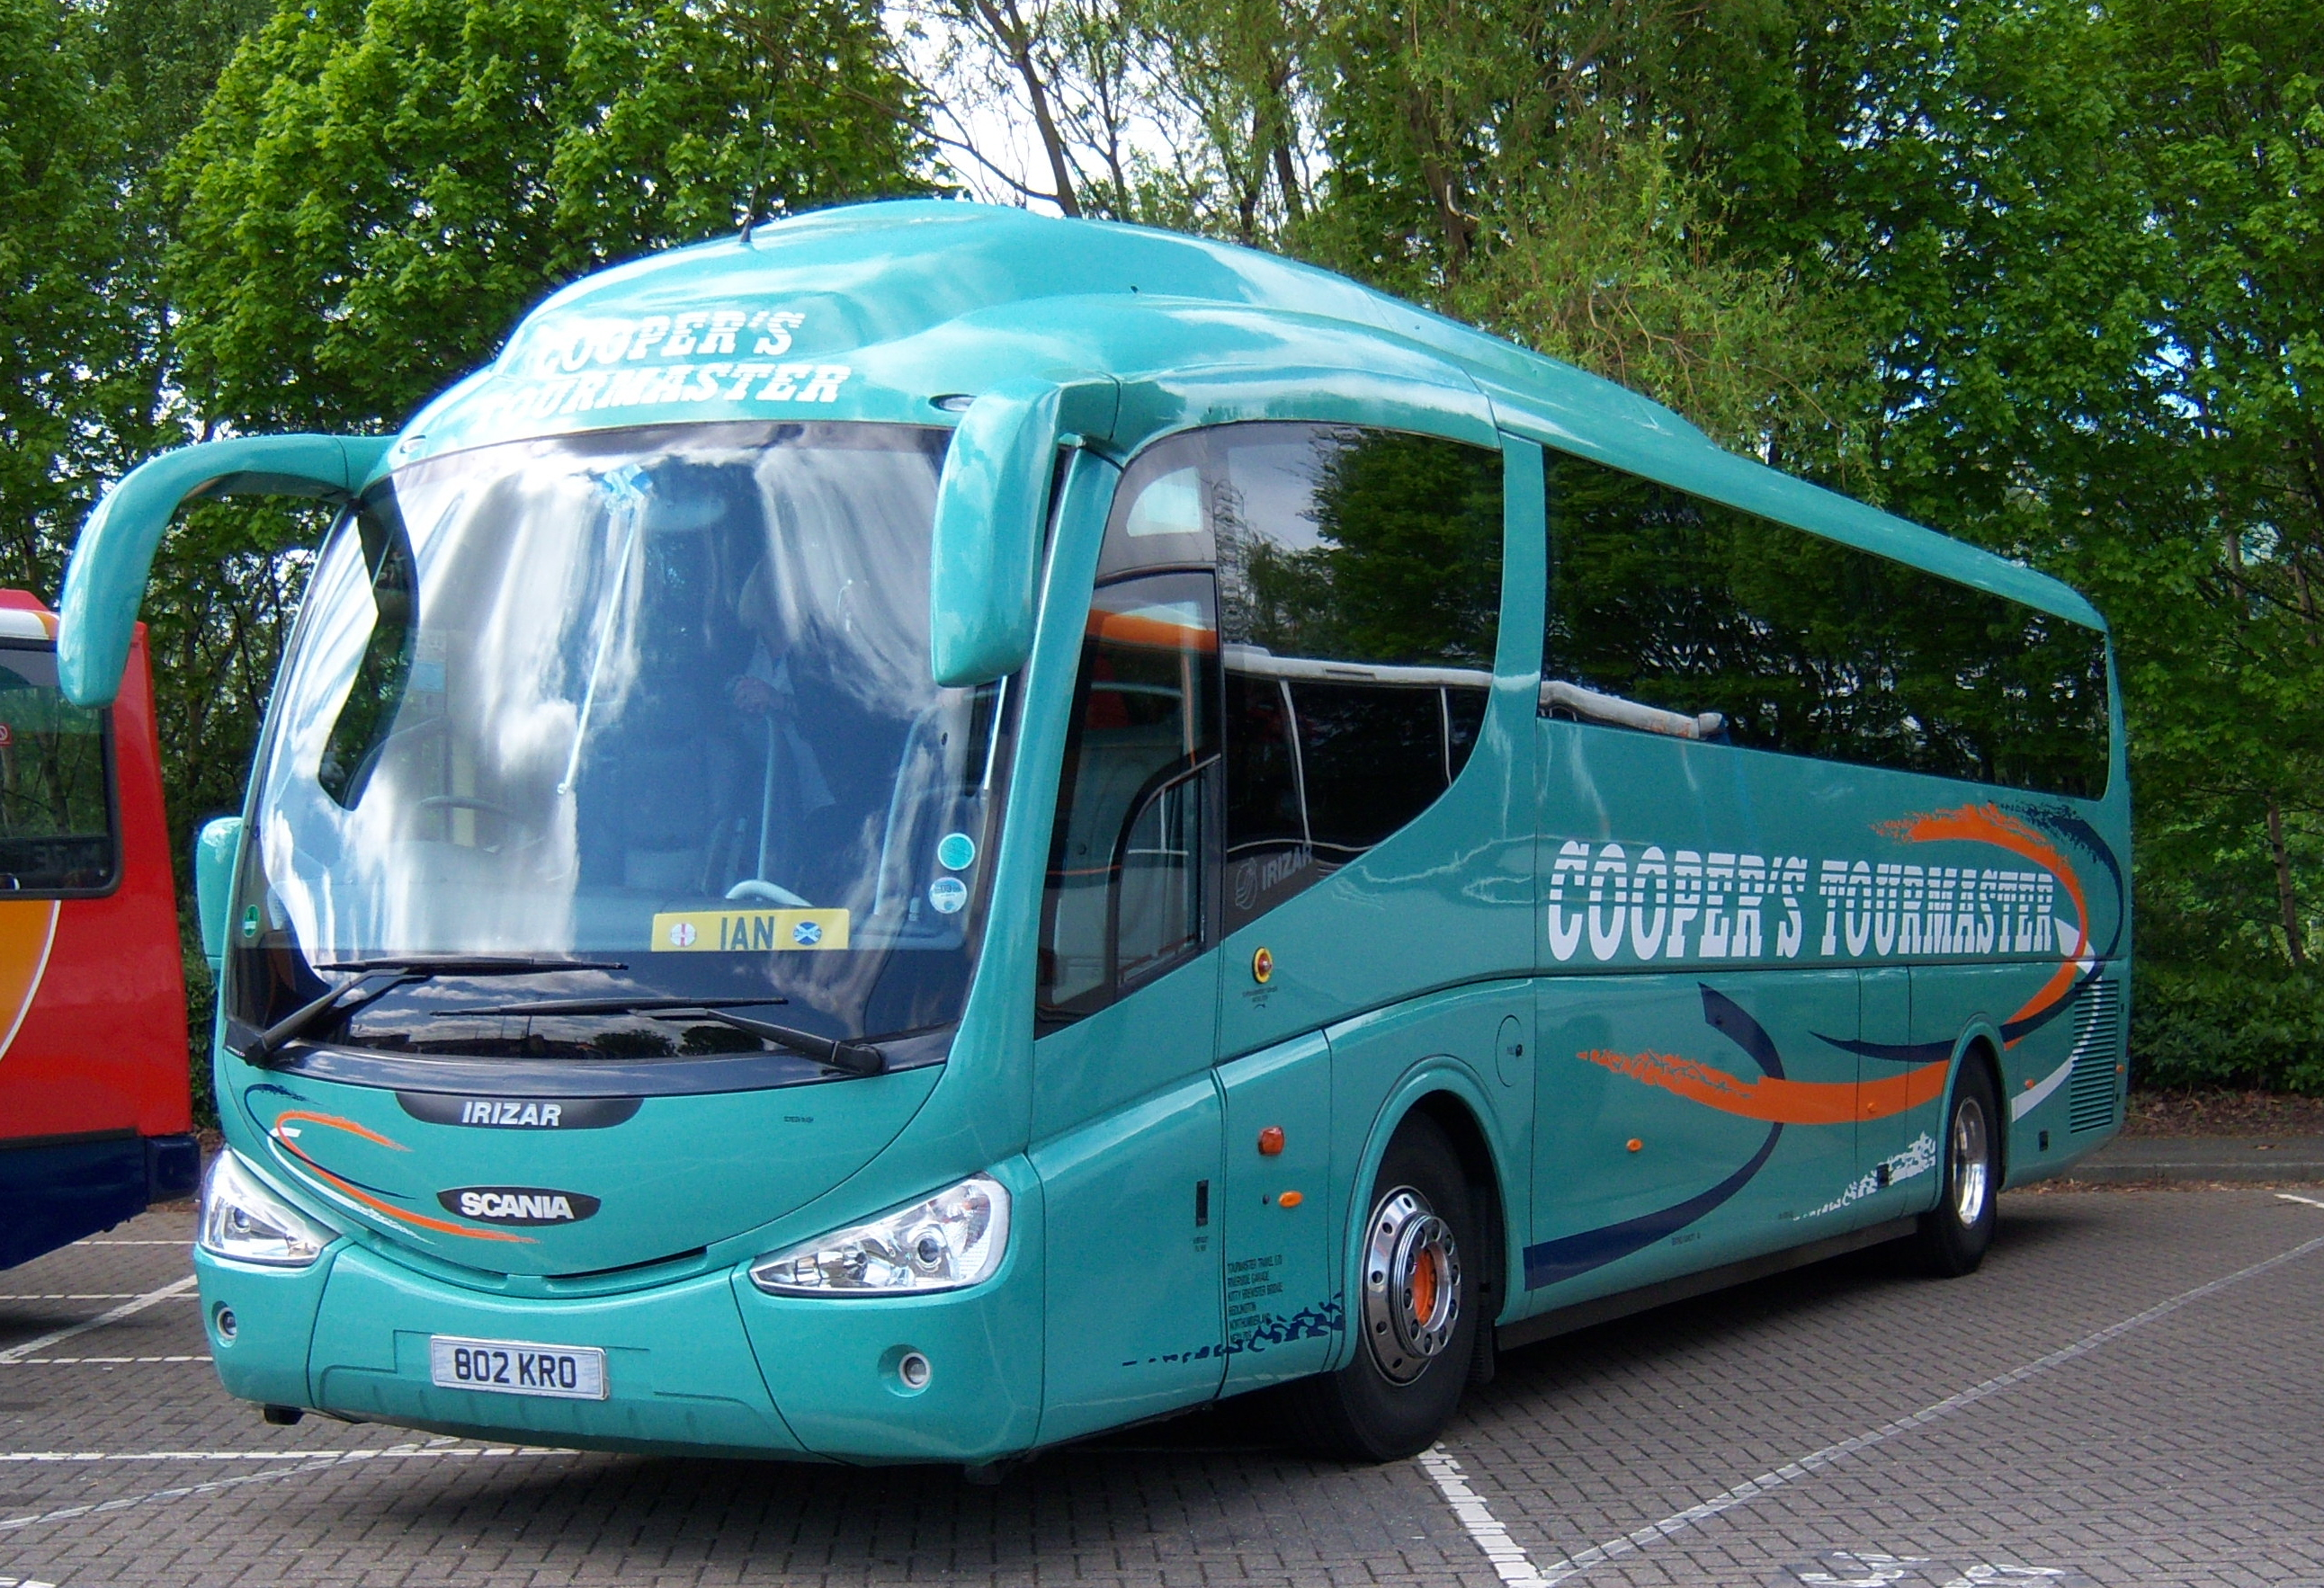 File Coopers Scania Irizar Coach 802 Kro Metrocentre Rally